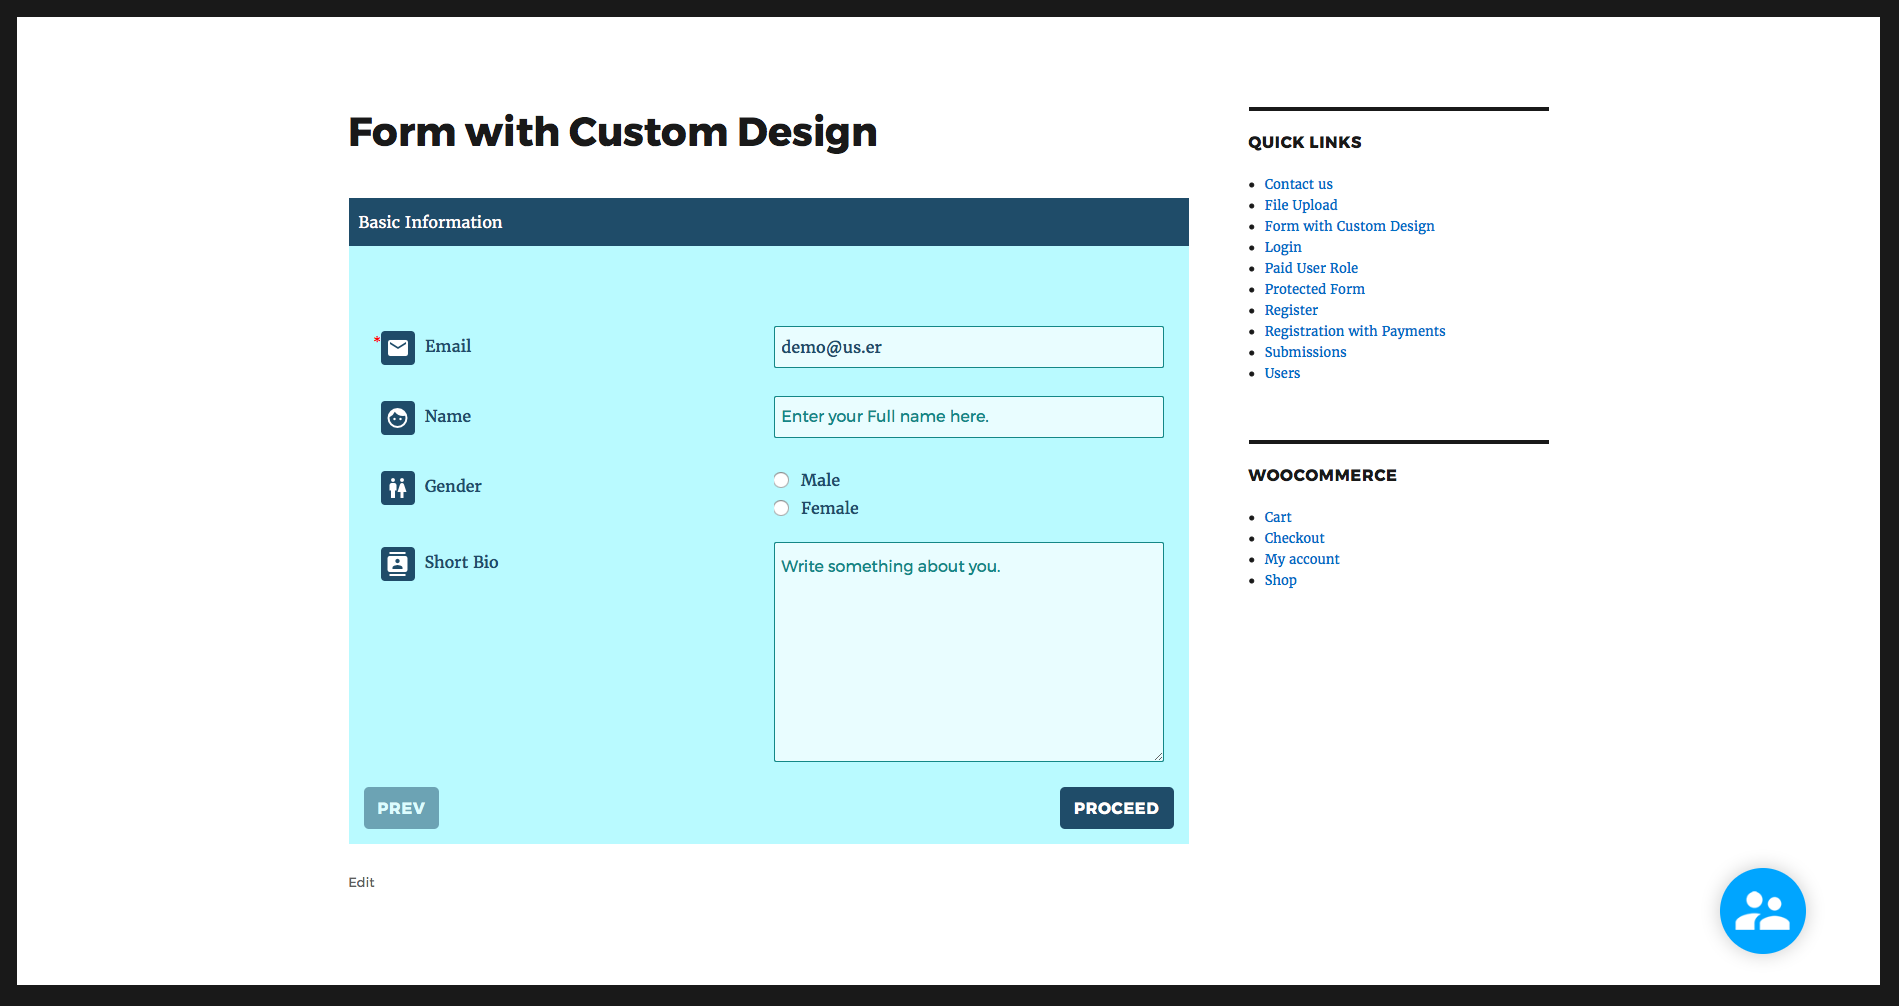 Shop customer account create/downloader - A Multi Page User Registration Form Styled Using Registrationmagic S Visual Form Editor